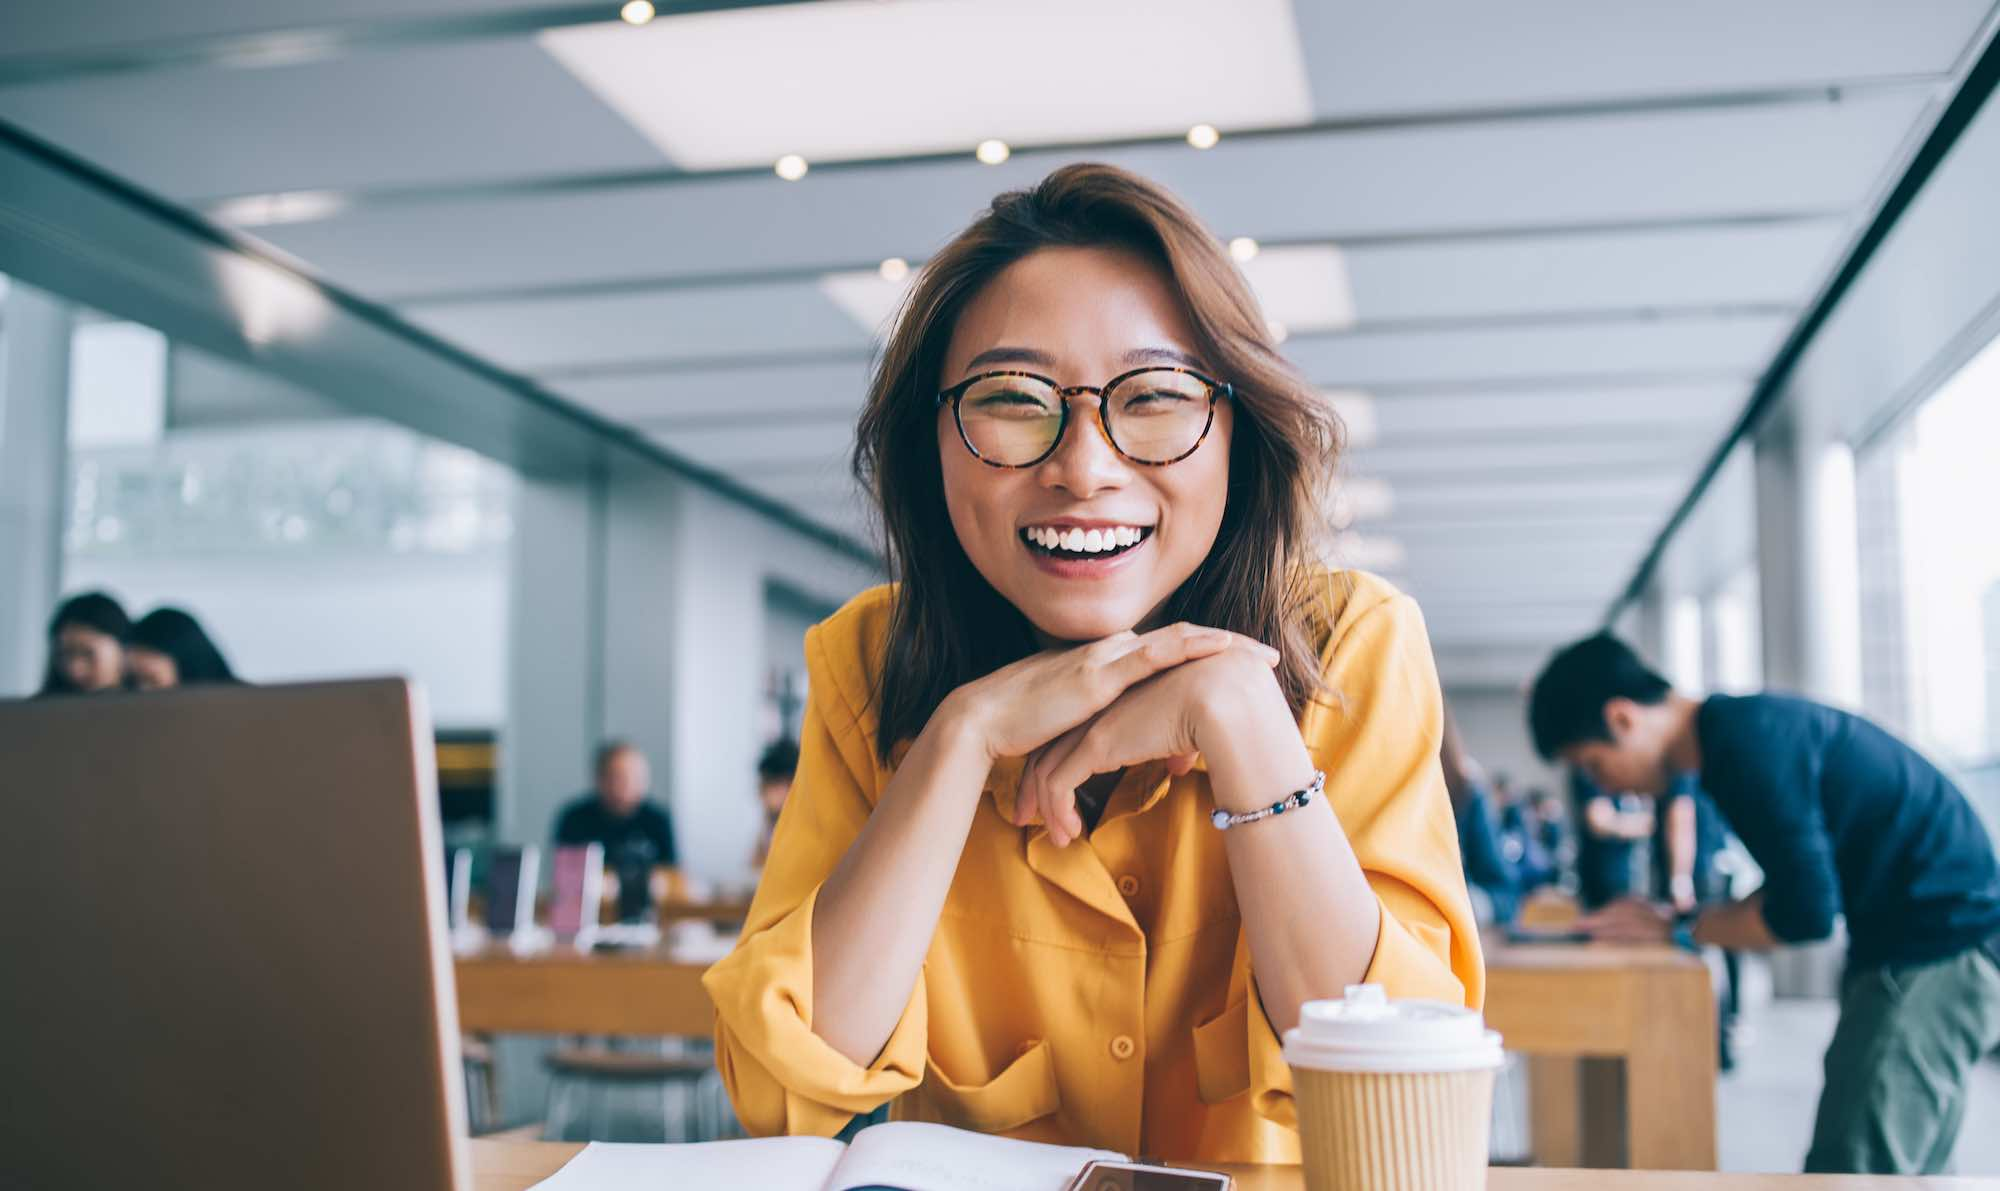 Image shows a happy smiling woman sitting at a table with a coffee and her digital devices to hand